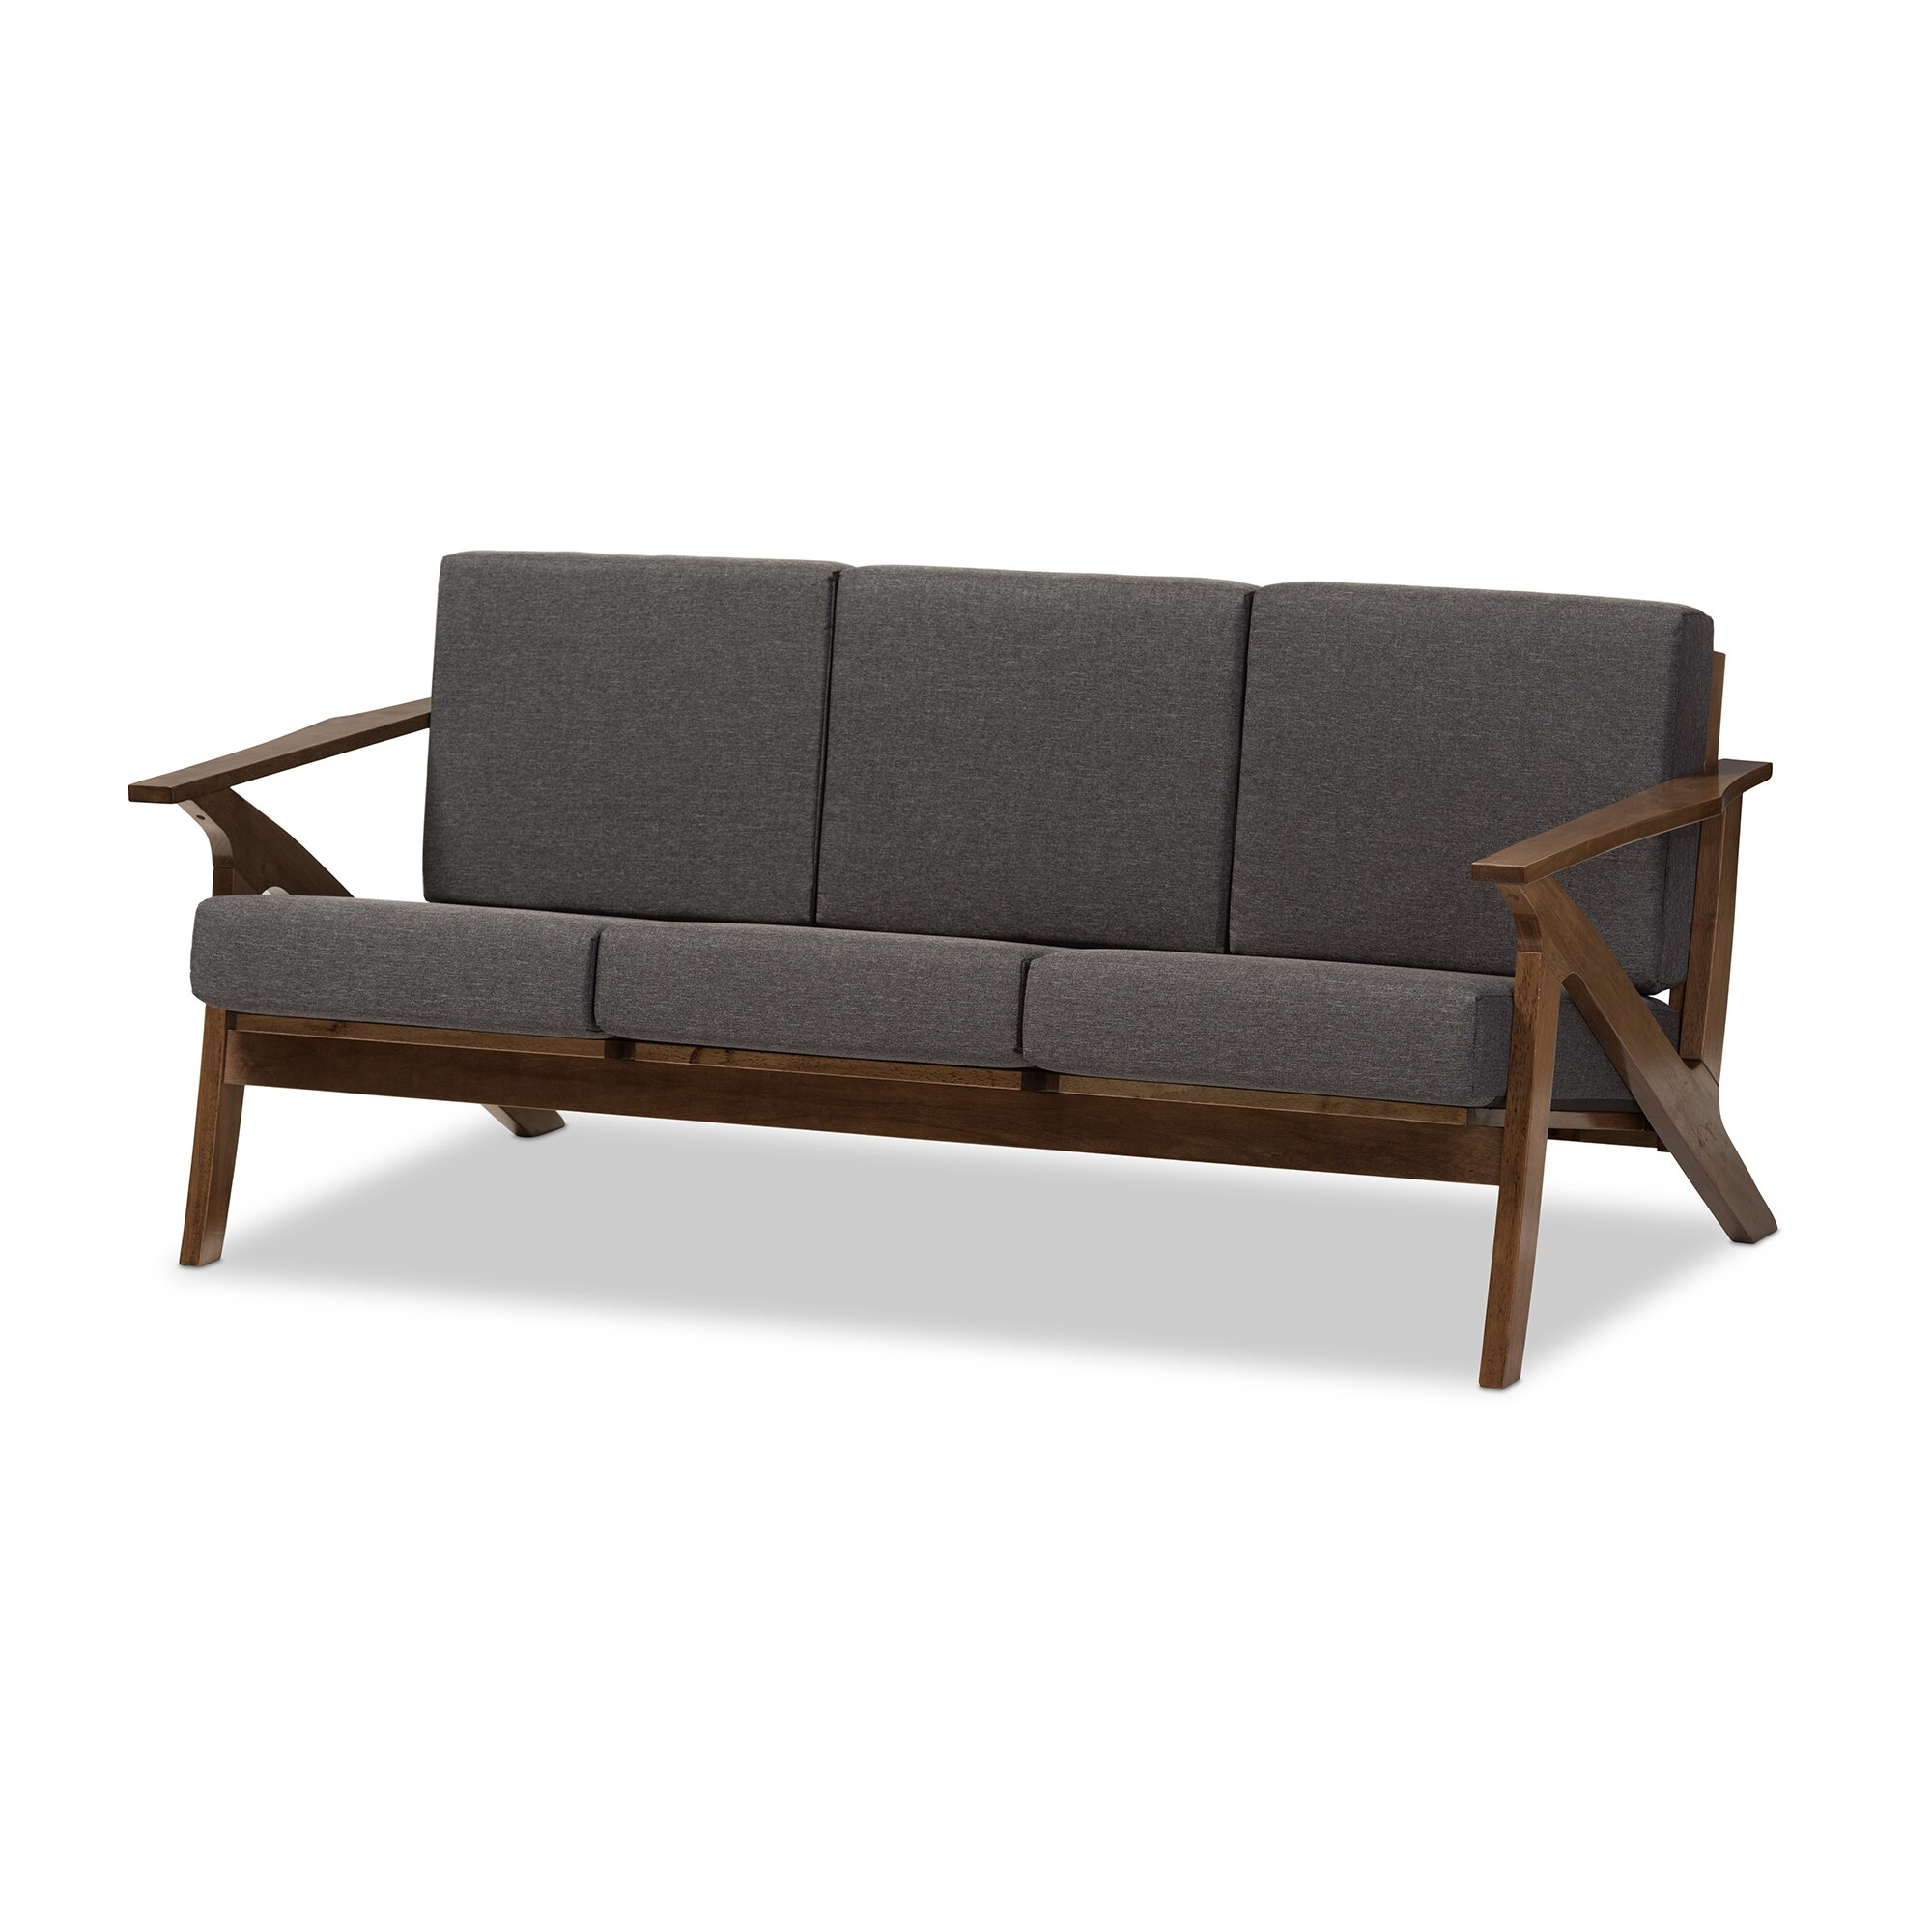 Wholesale interiors baxton studio mid century modern sofa for Modern sofa chair